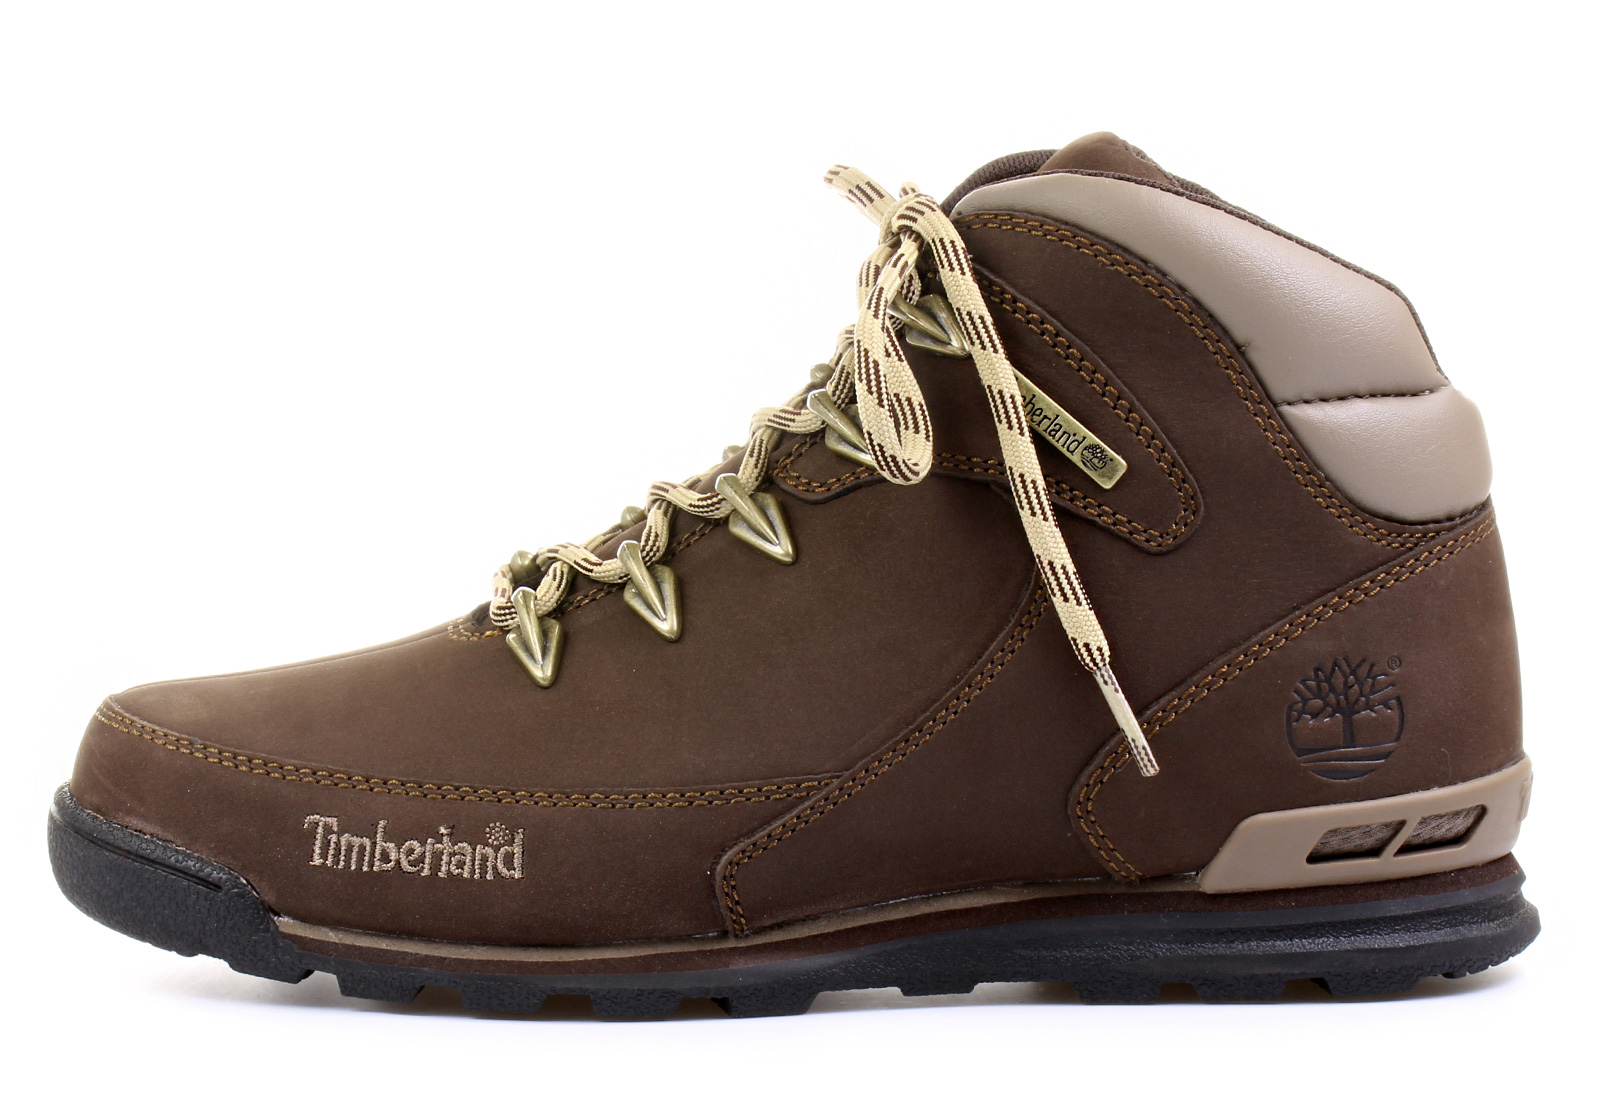 05ca90ed379 Timberland Boots - Euro Rock Hiker - 6823R-BRN - Online shop for sneakers,  shoes and boots